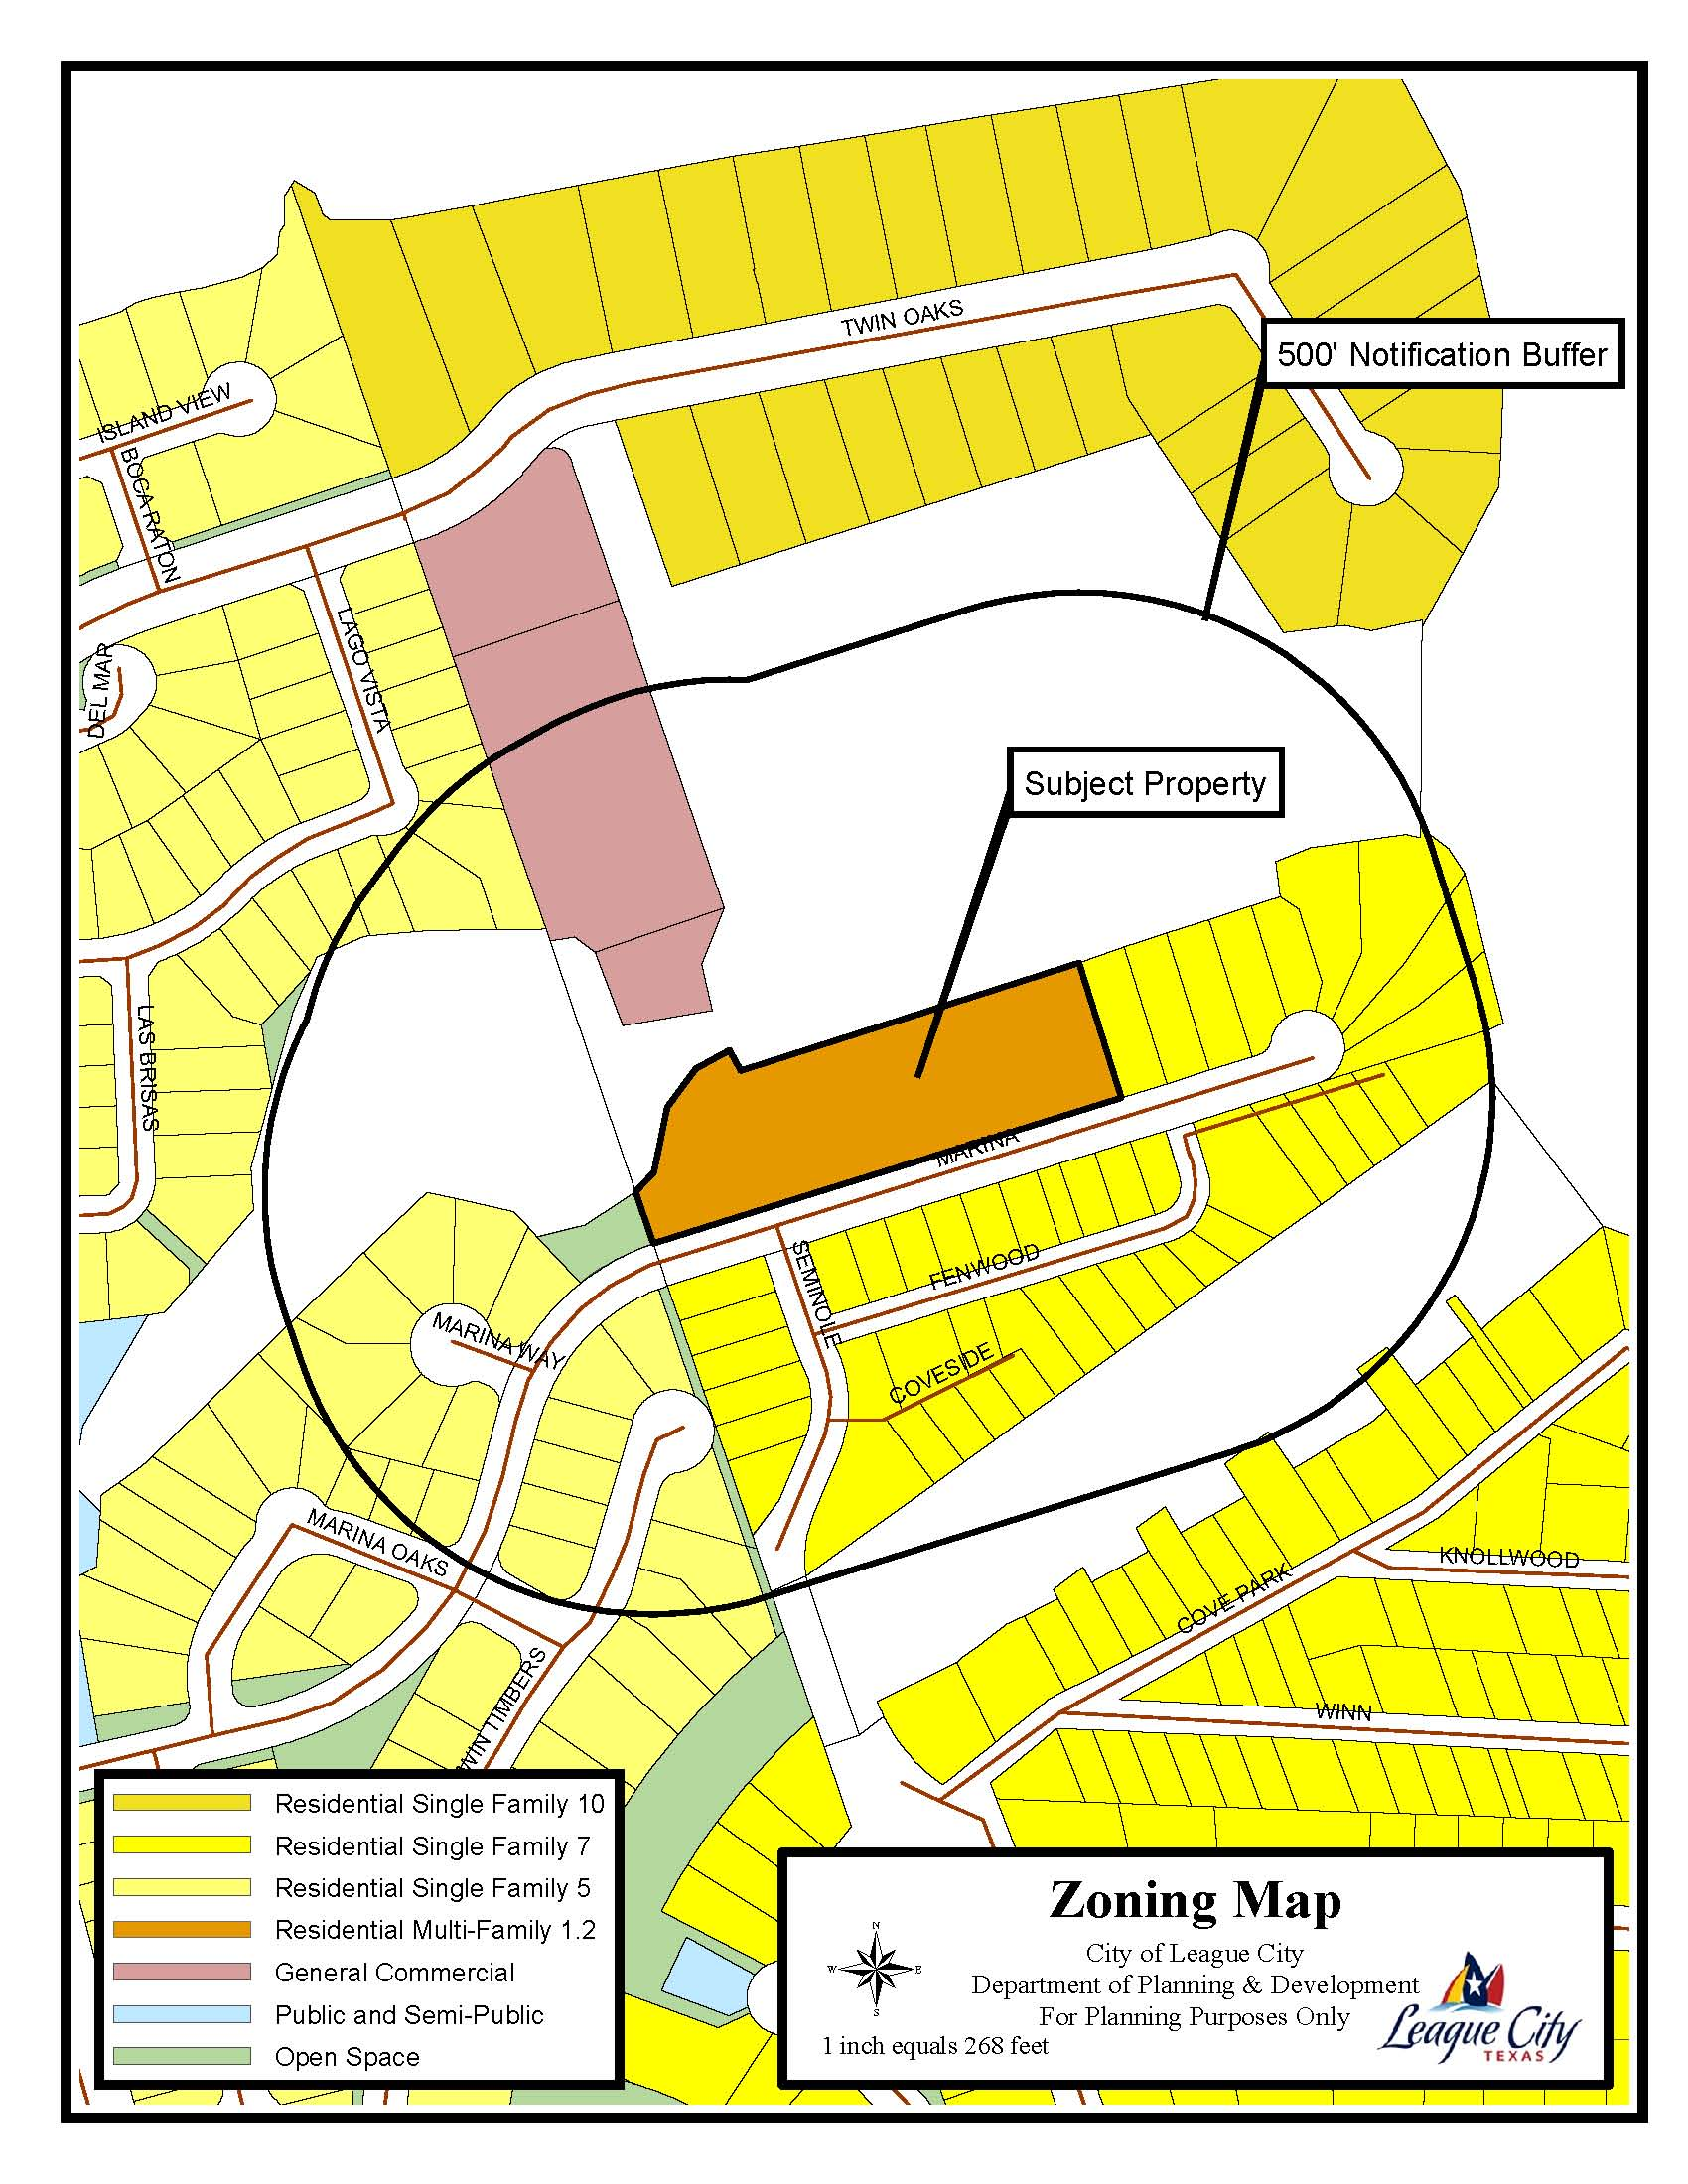 Z15-05 (Newcor Development) Zoning Map